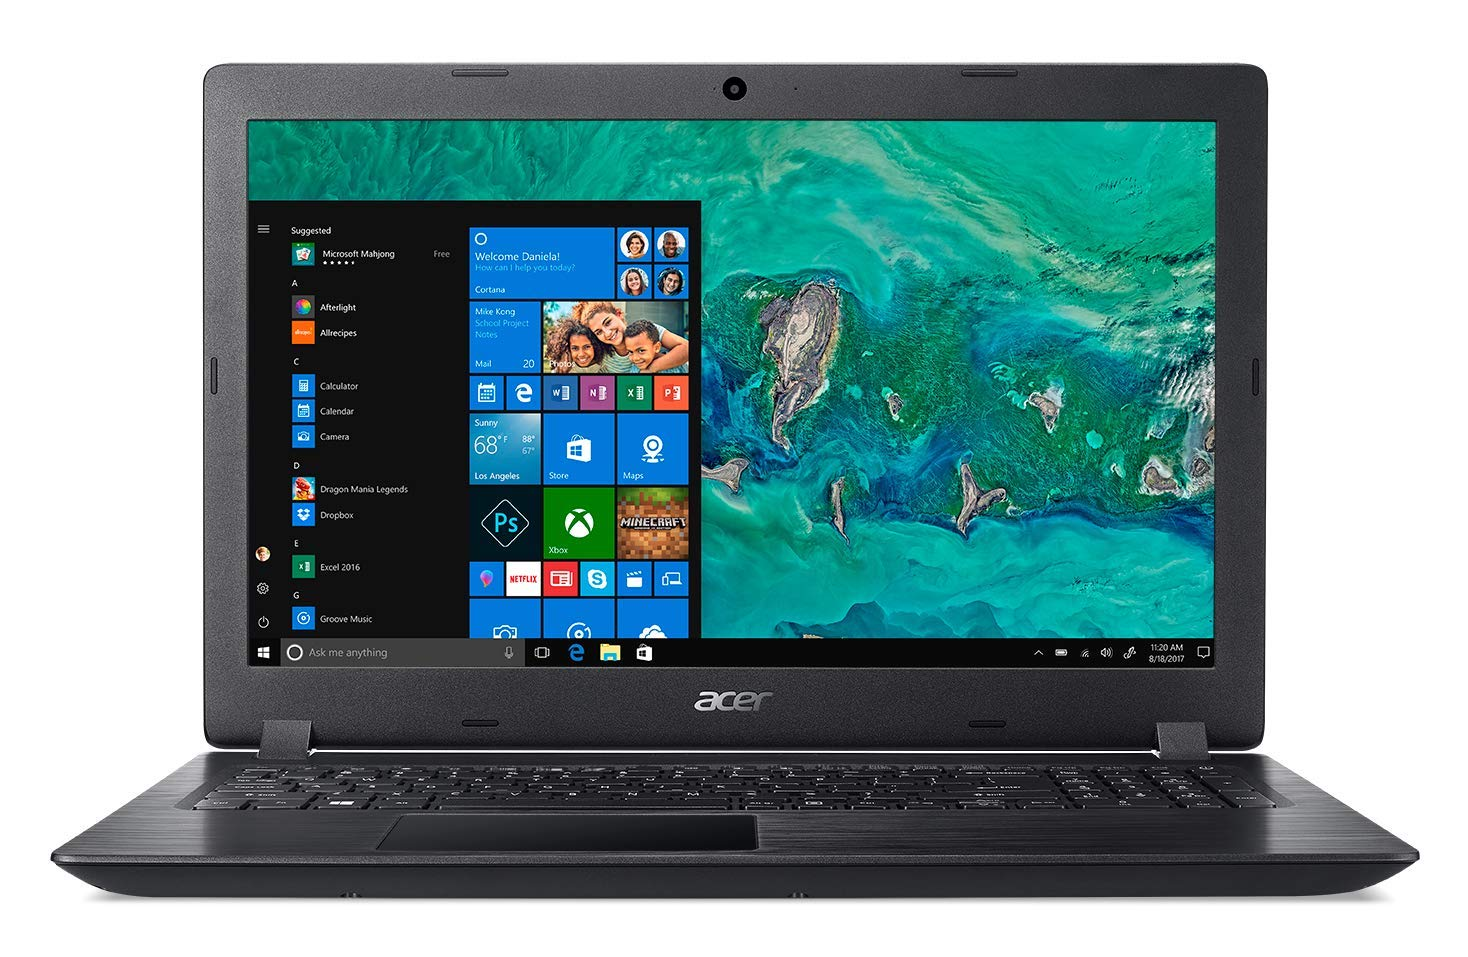 ACER ASPIRE X1930 INTEL TV TUNER WINDOWS VISTA DRIVER